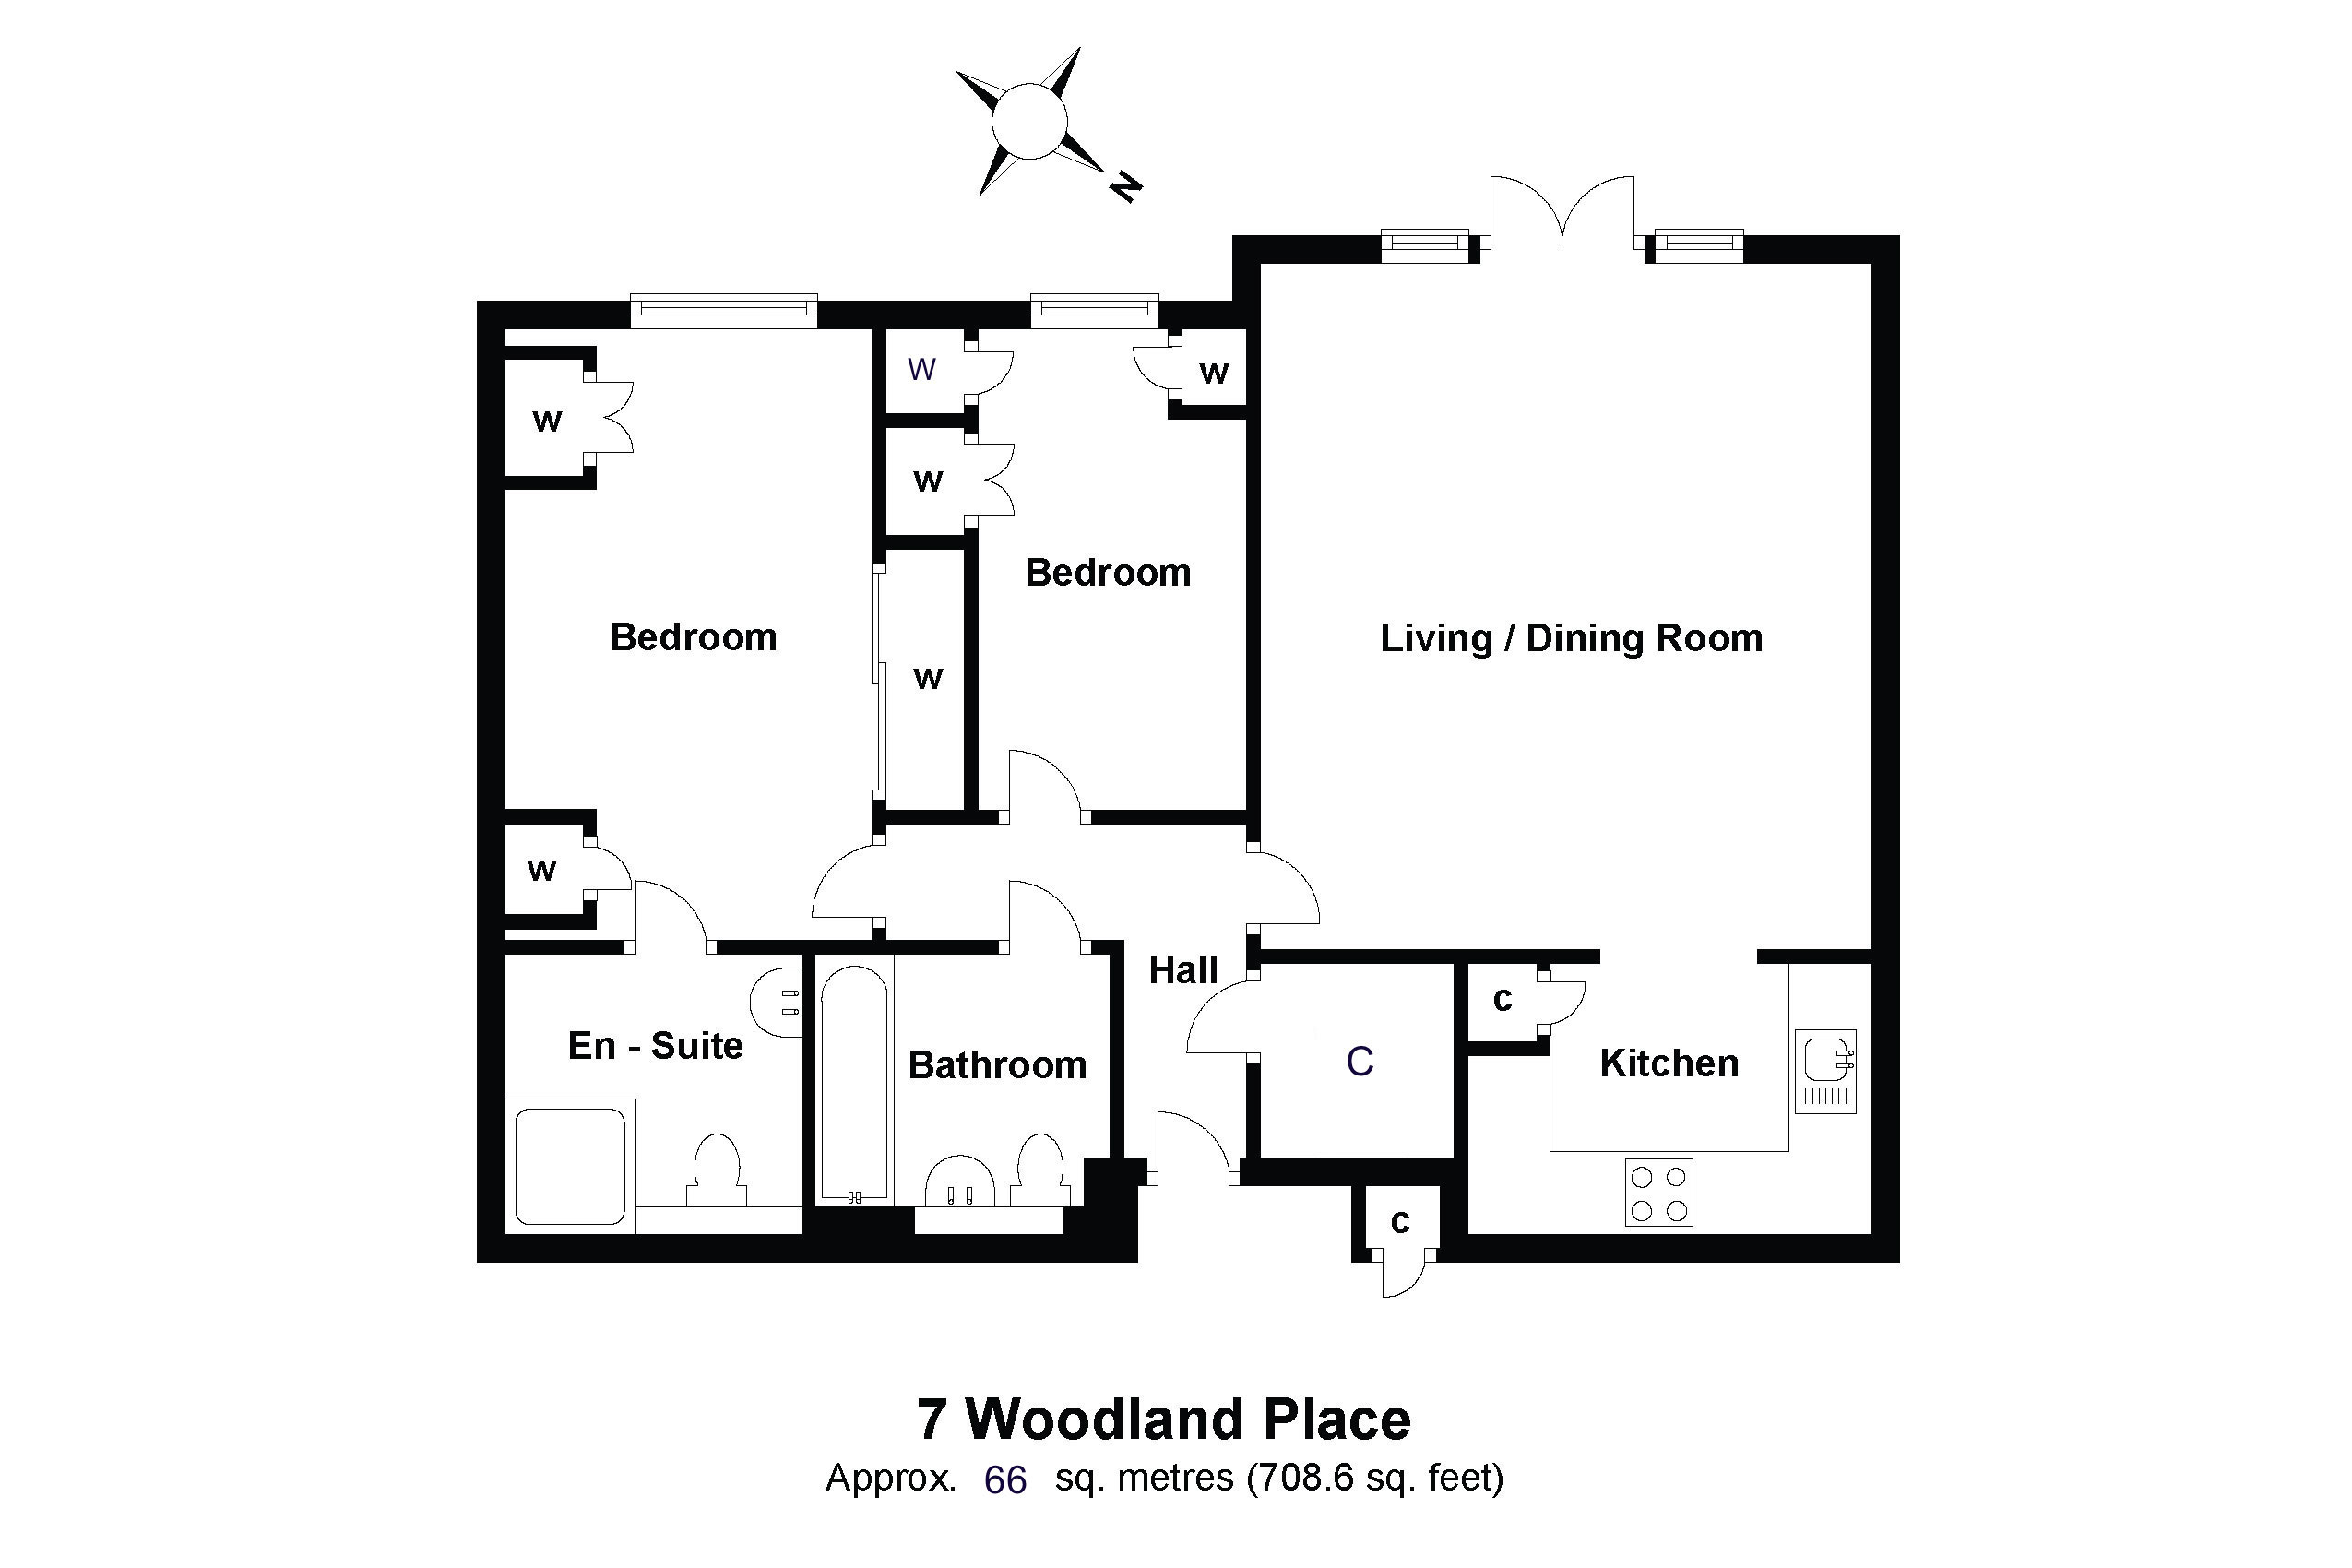 7 Woodland Place Floorplan